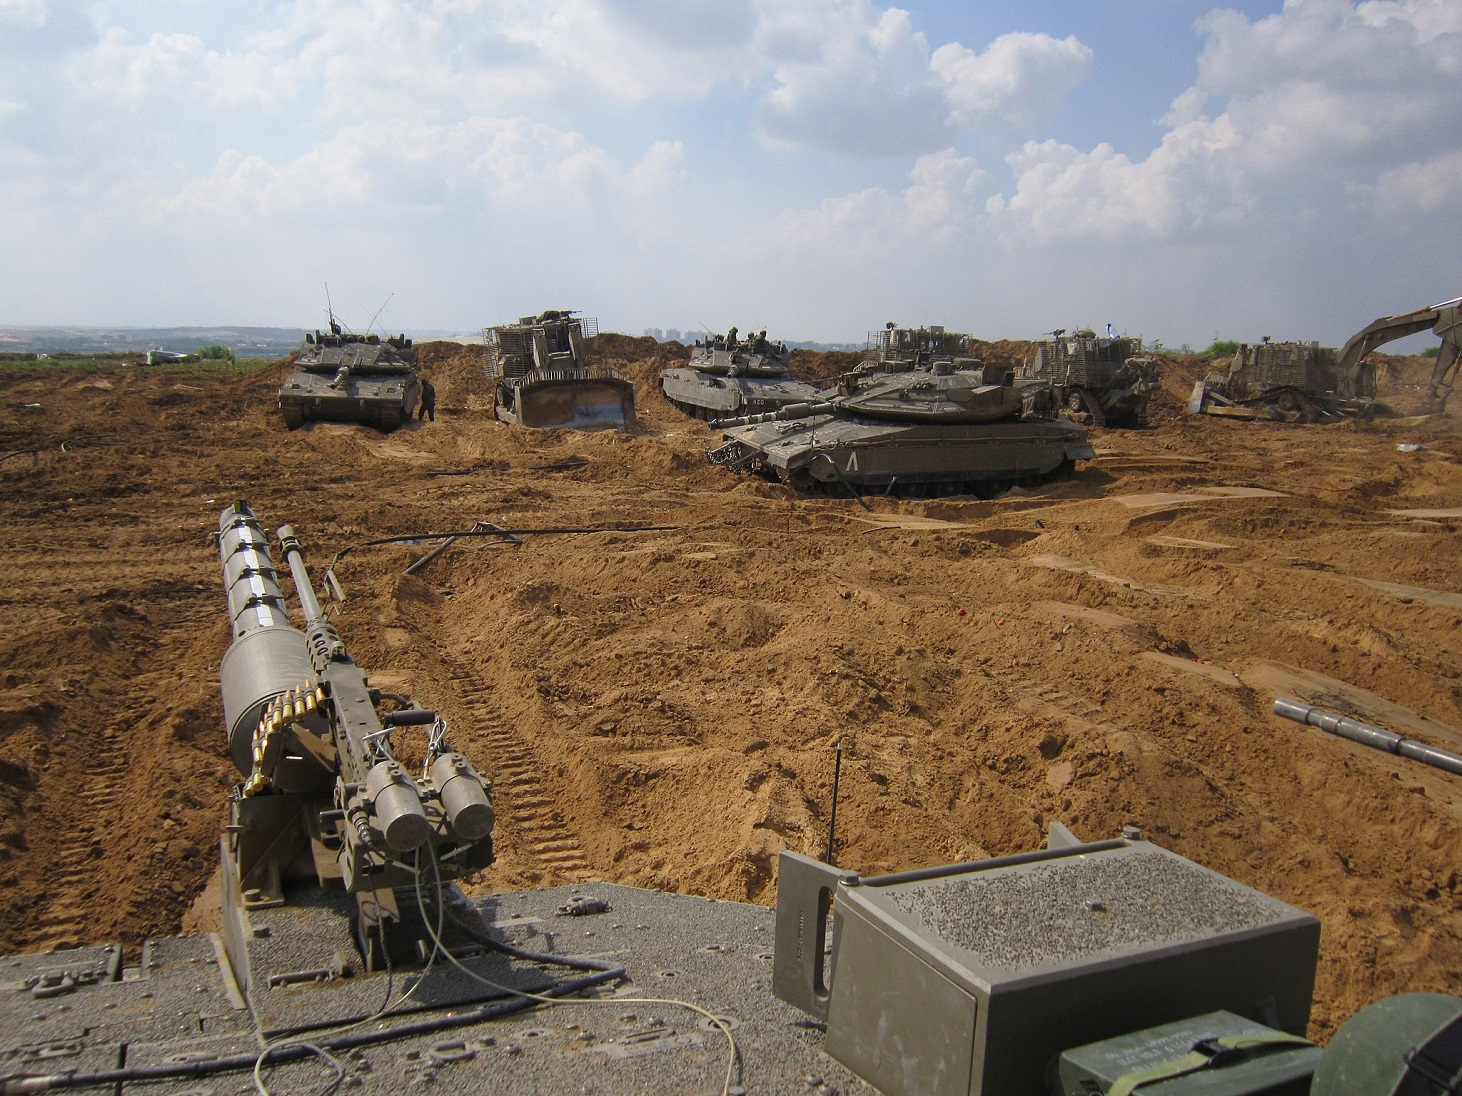 armored_corps_operate_near_the_gaza_border_14569836159